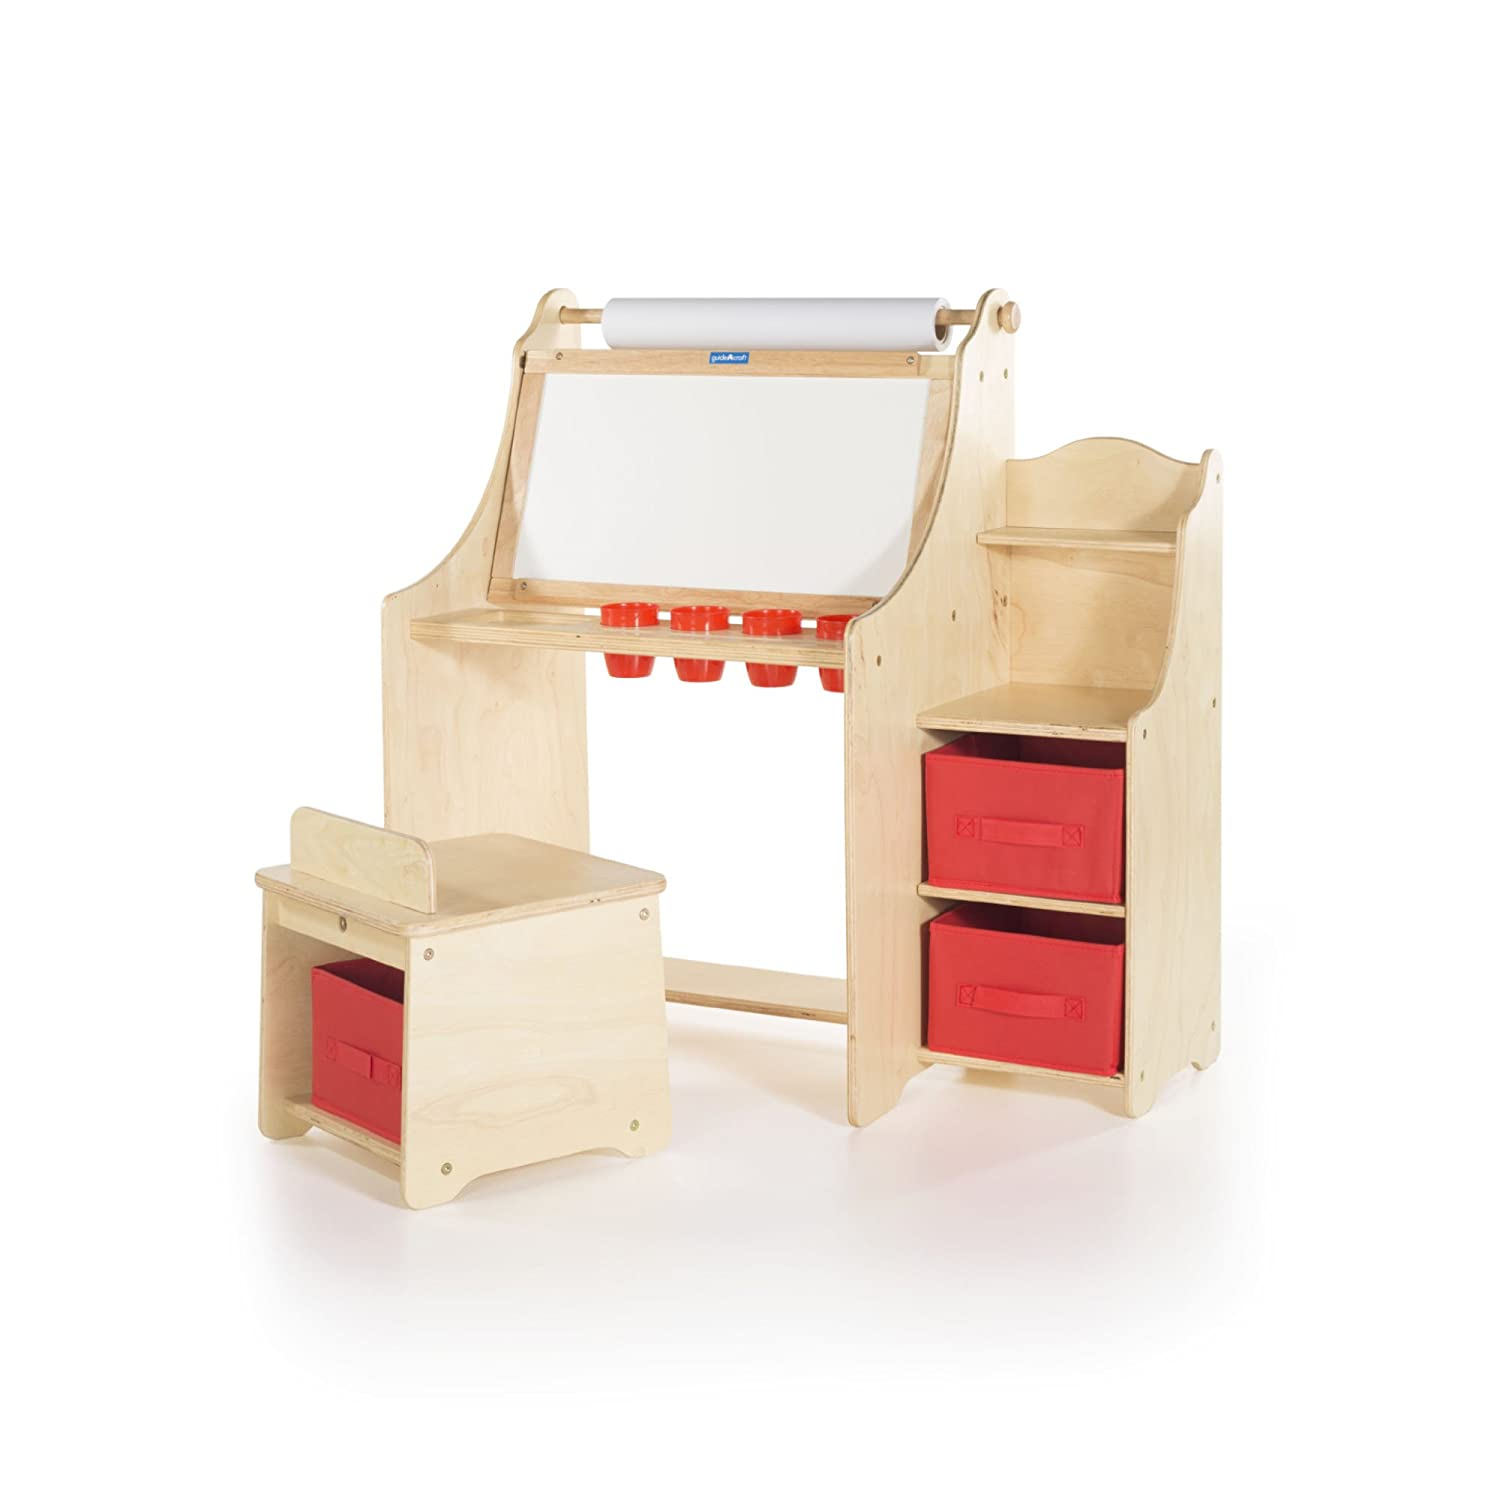 Guidecraft Artist Activity Desk with Storage Stool - Desk Unit, Chair, Paint Cups and Fabric Storage Bins ababy 26999